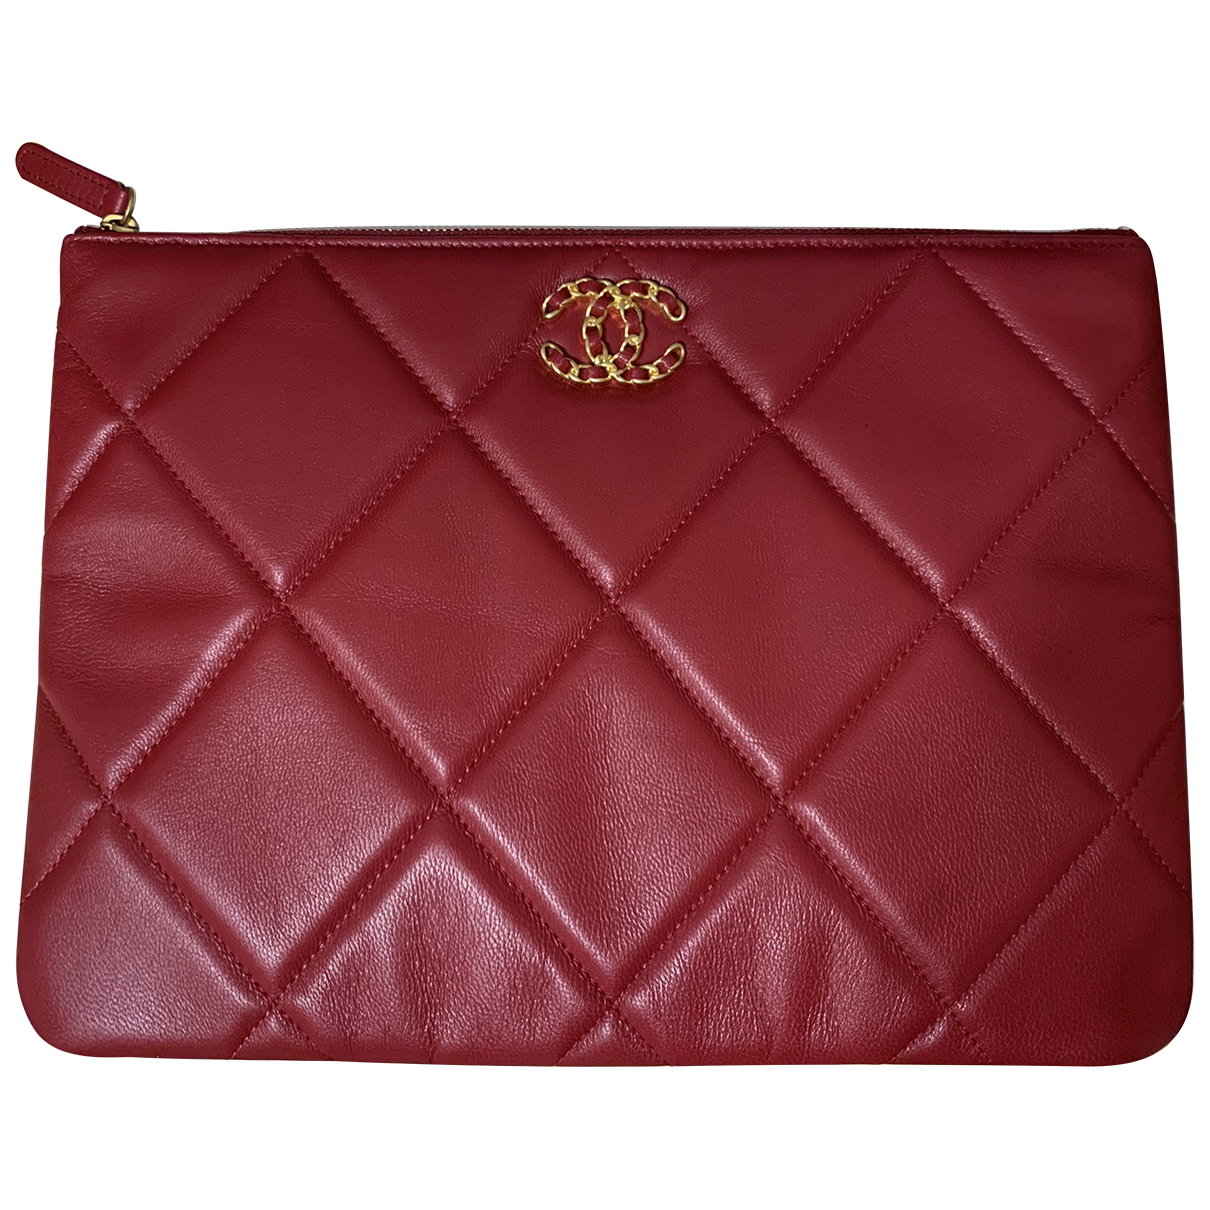 Chanel N Red Leather Clutch bag for Women N